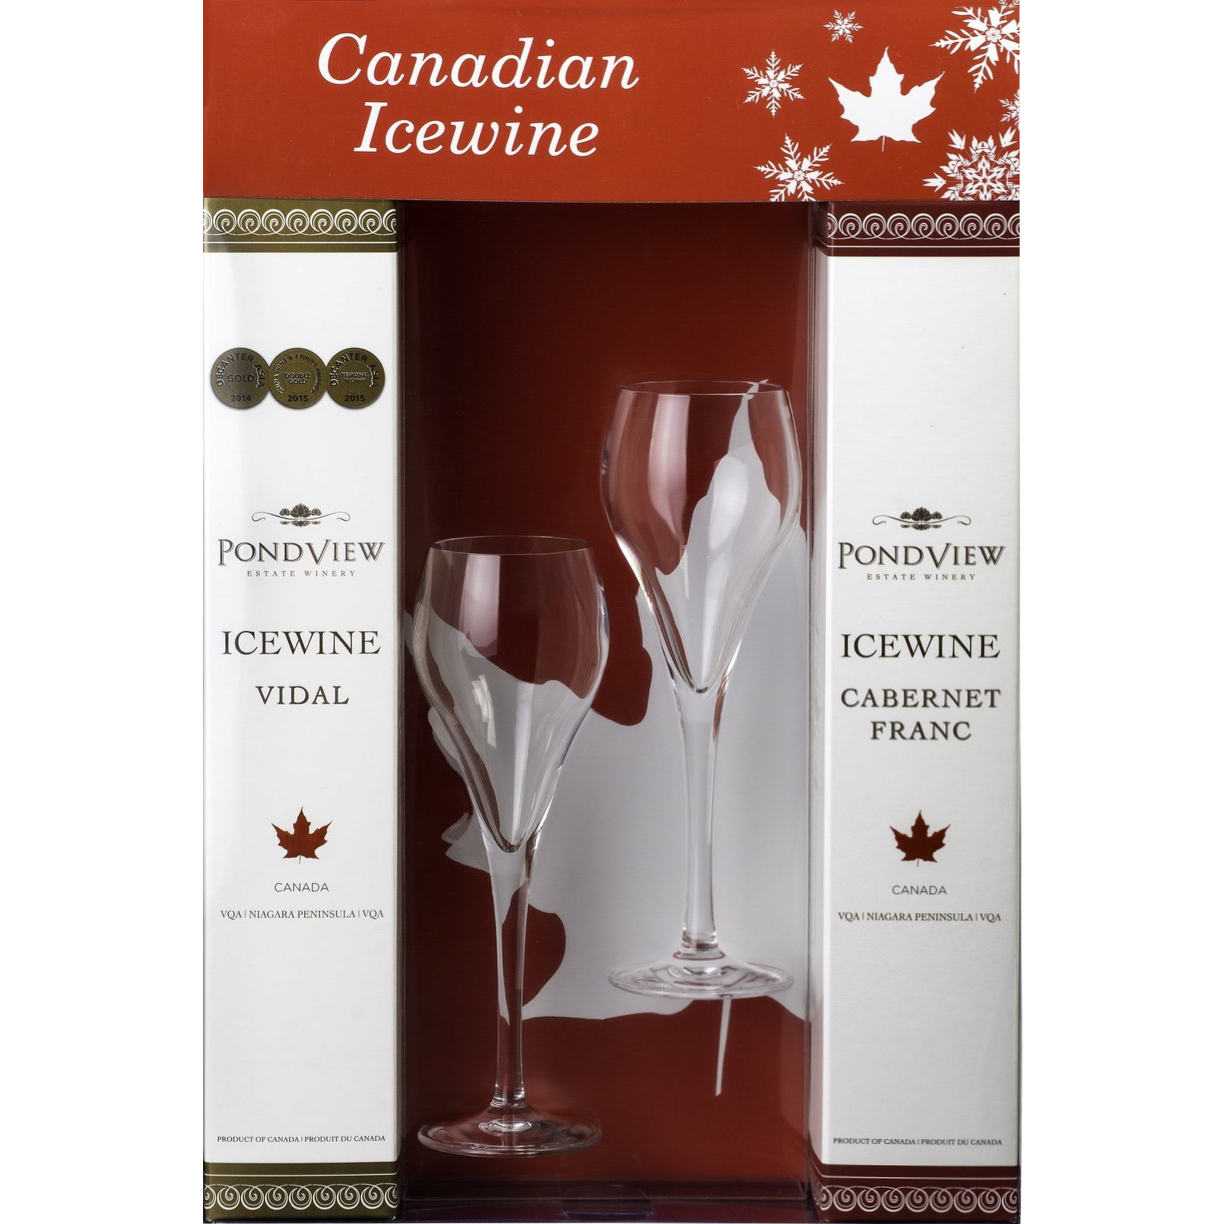 Pondview: 'Taste of Canadian Icewine' gift set